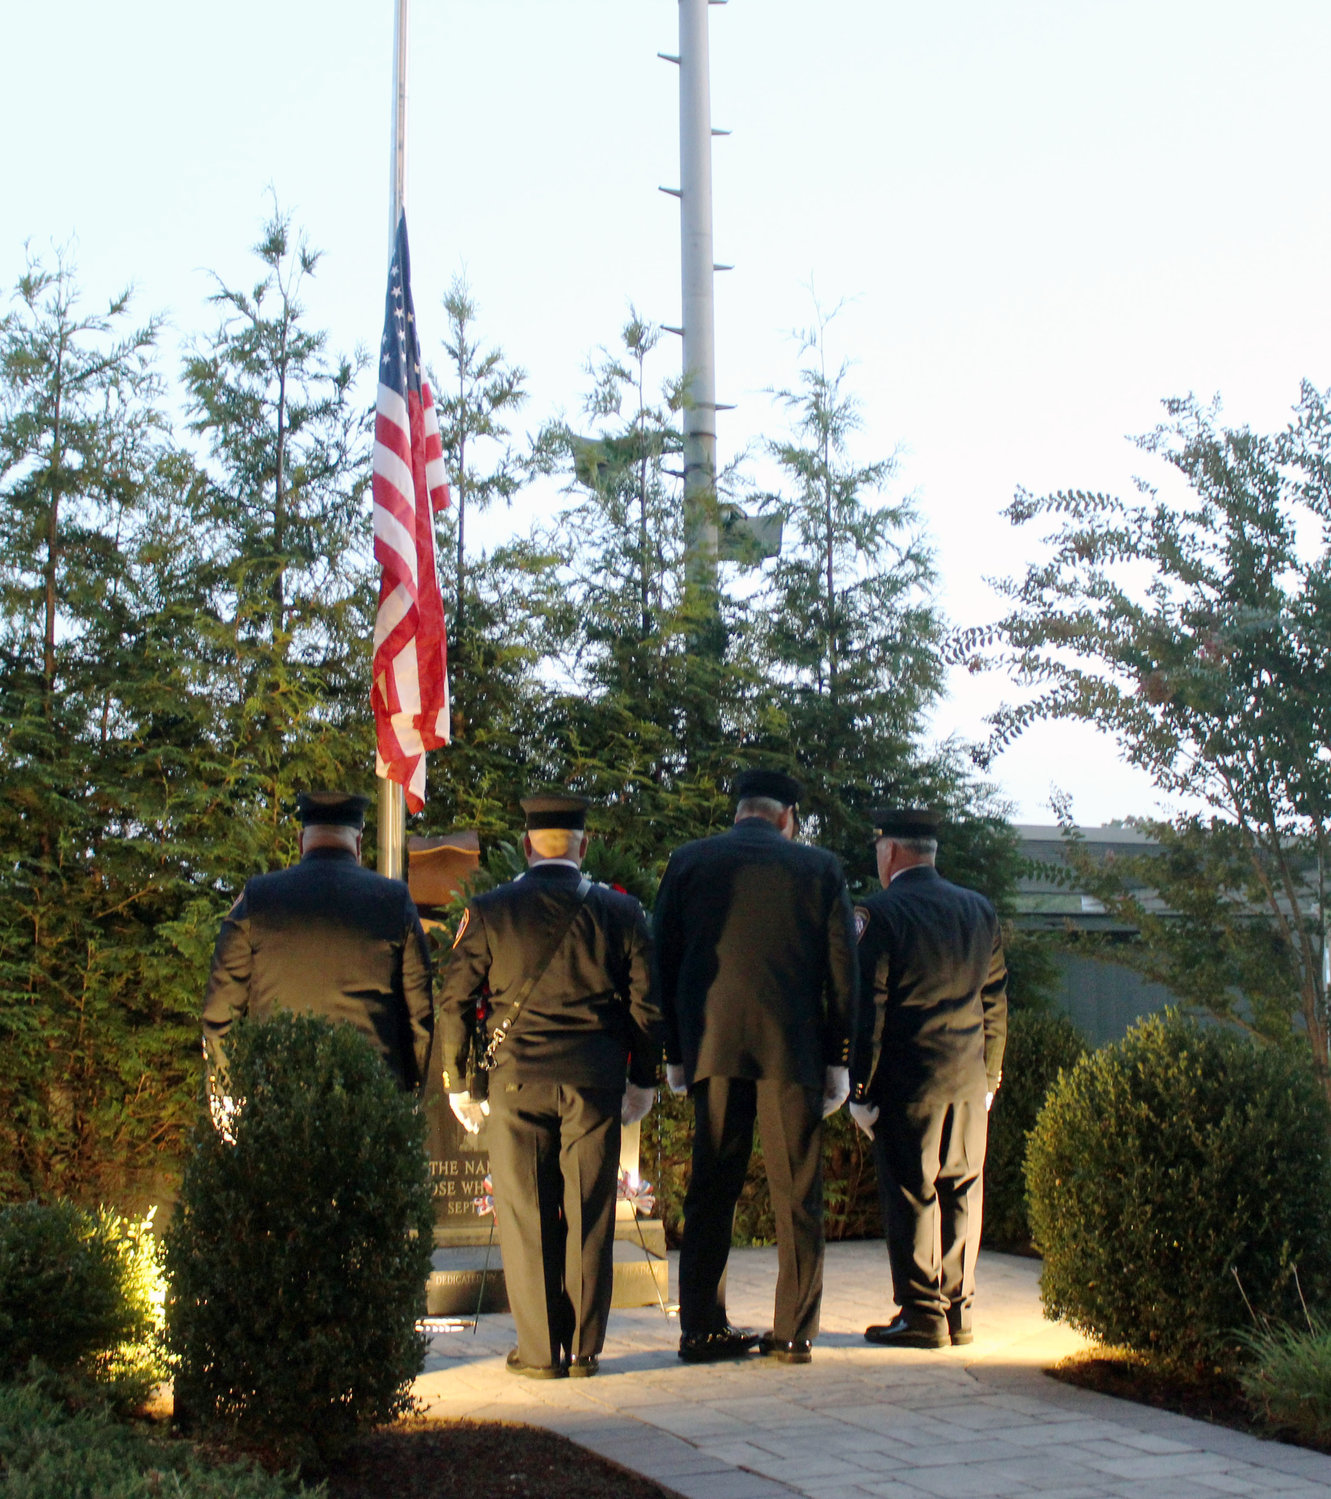 EMFD volunteers placed a wreath in front of the memorial, which was erected by the Kiwanis Club in 2014.